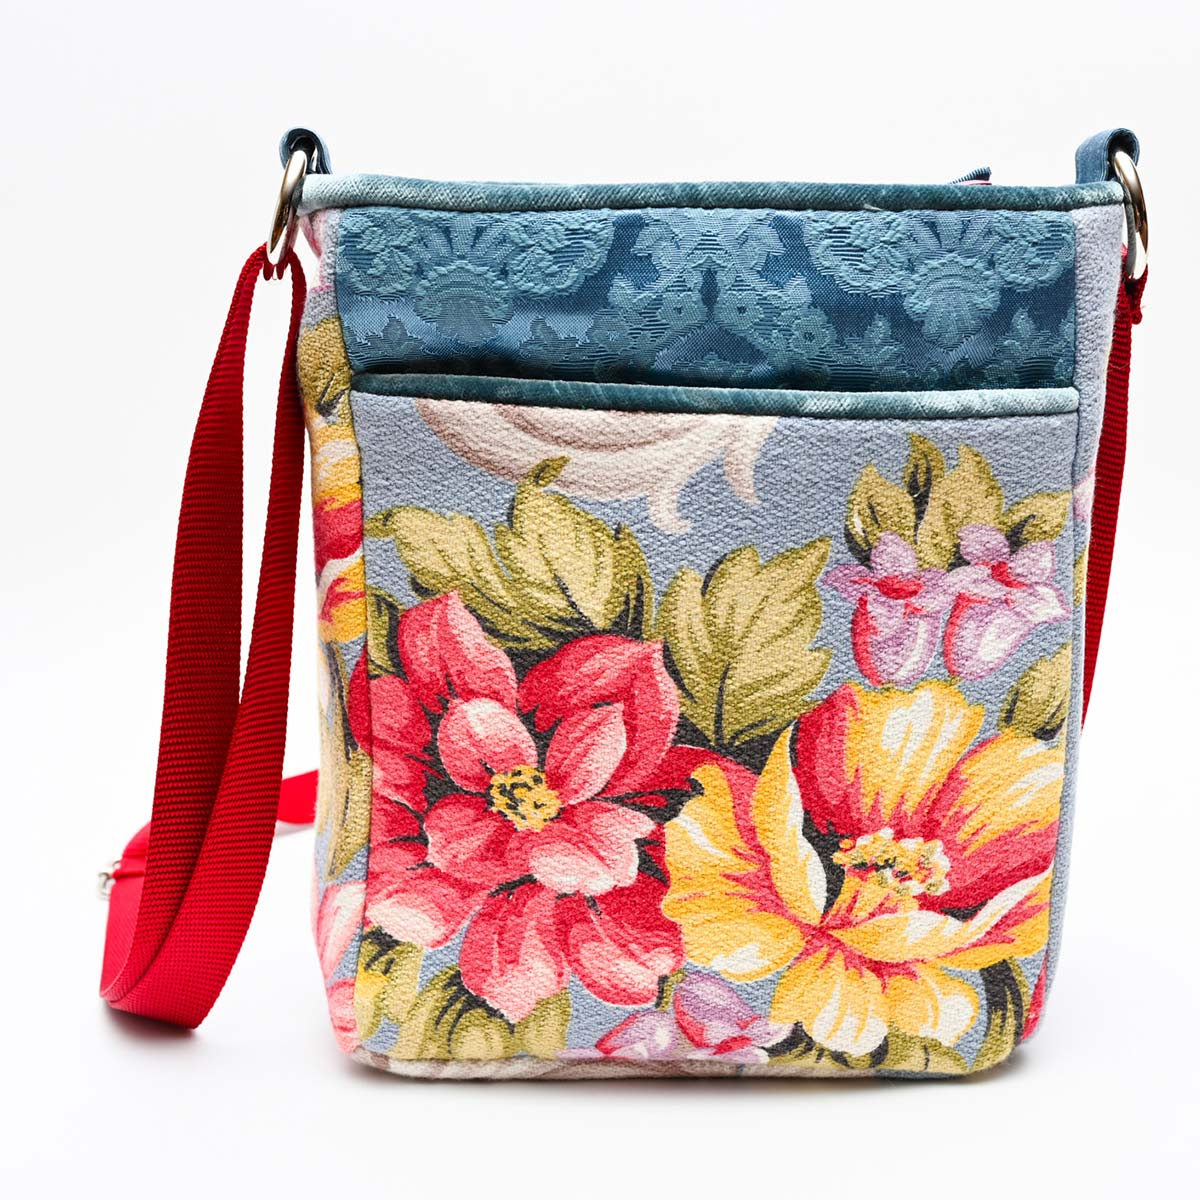 crossbody bag floral bouquet on blue